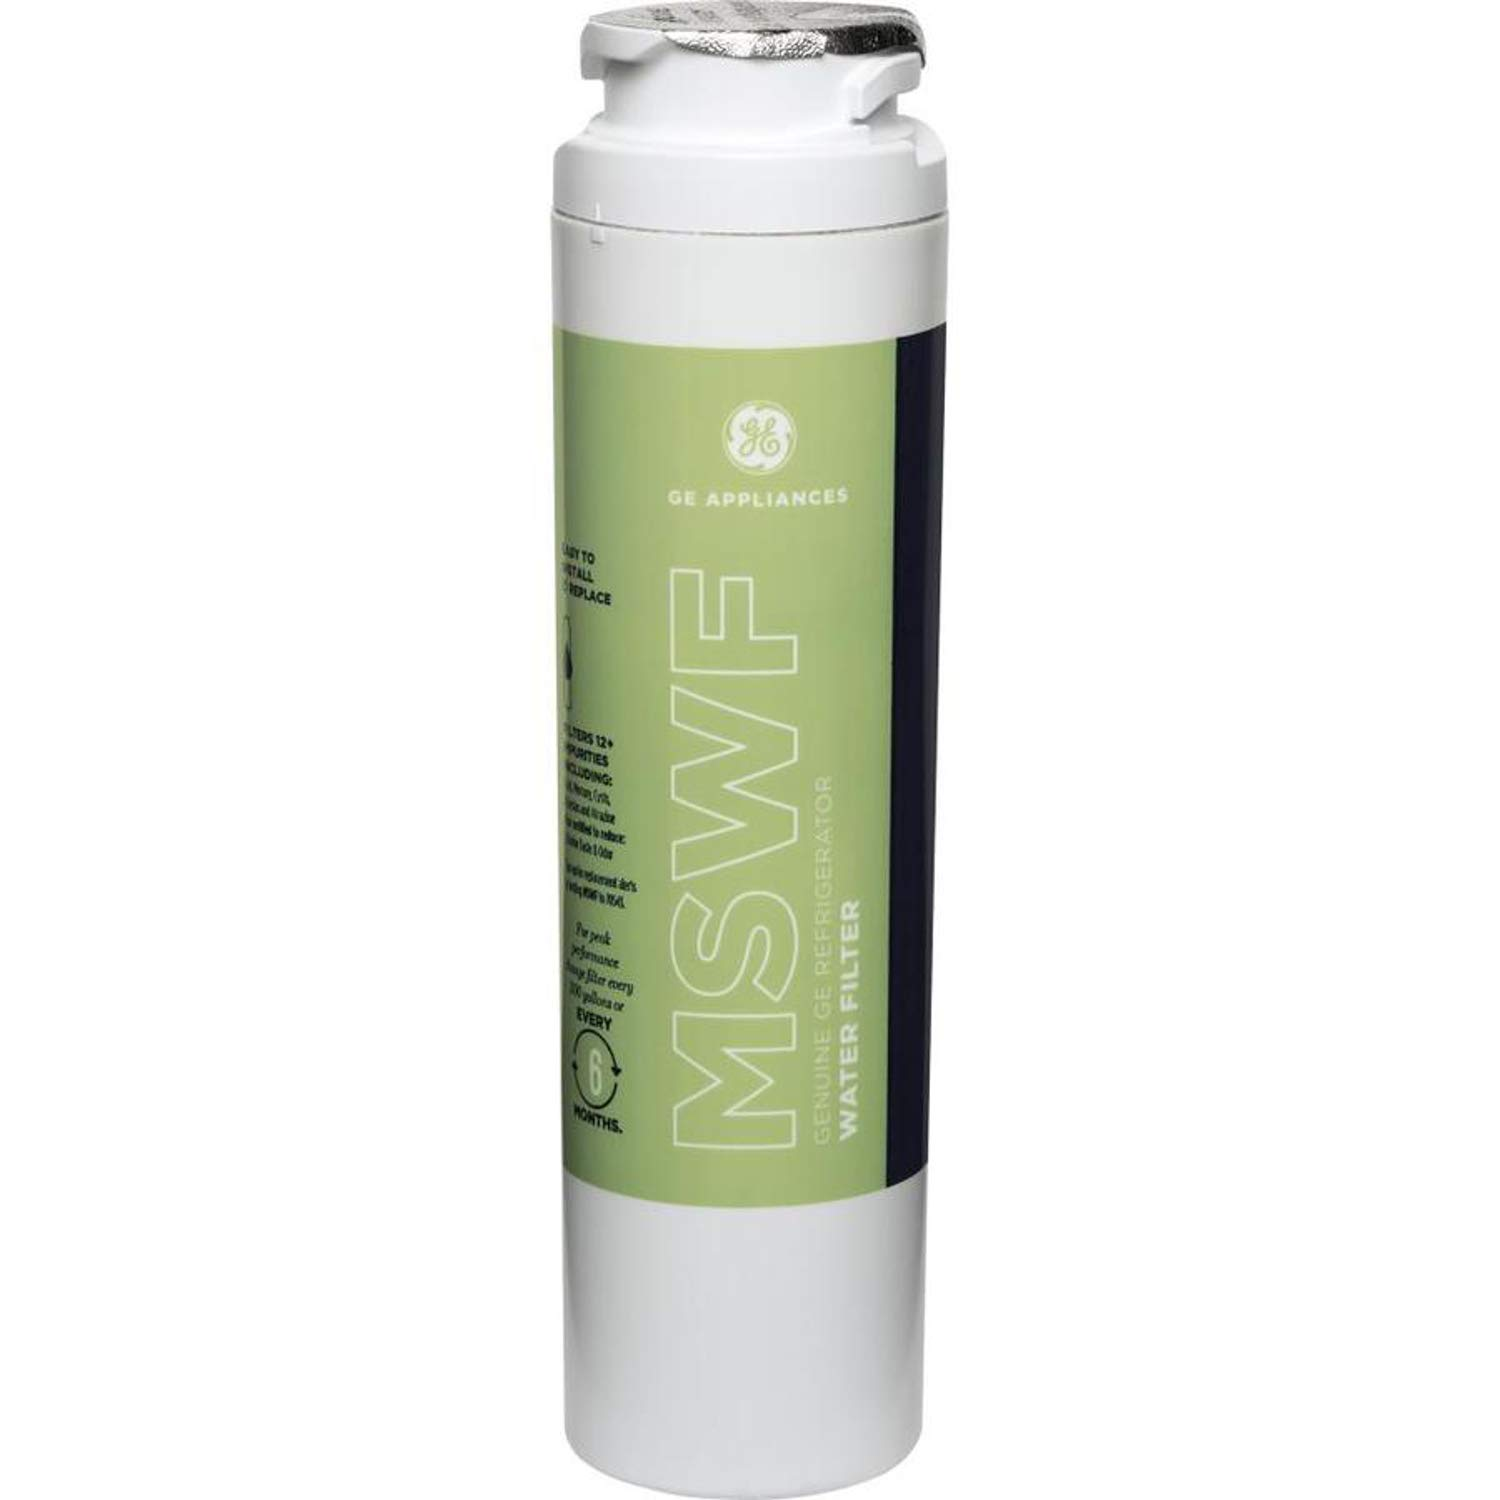 Larkspur Outlet Smartwater MSWF 6-Month Refrigerator Replacement Cartridge Water Filter